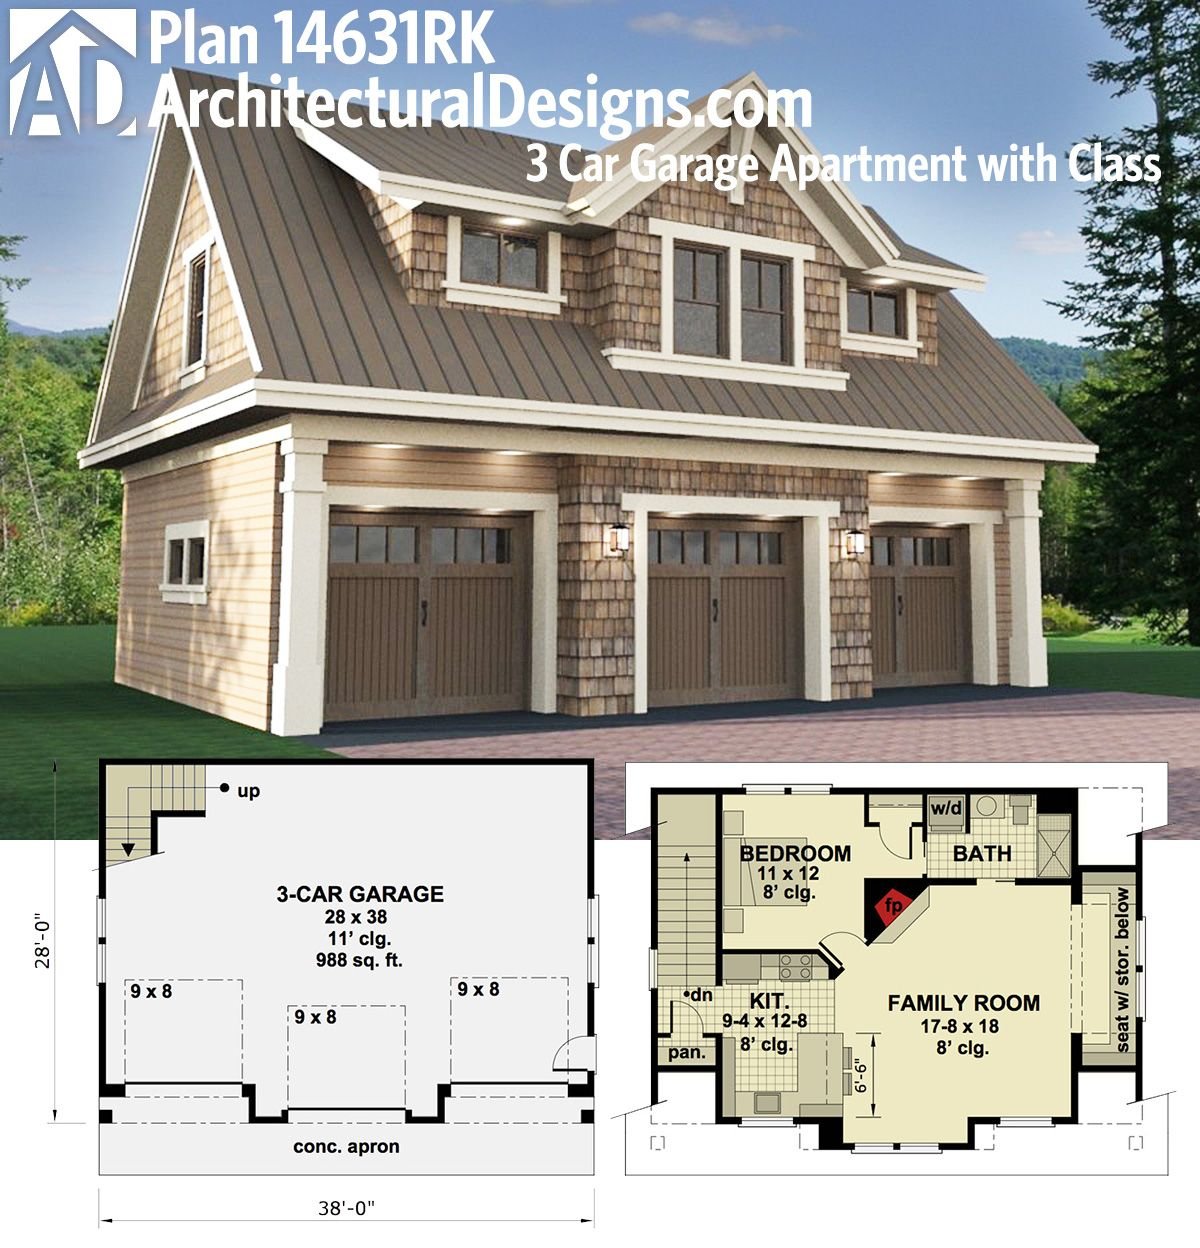 Plan 14631rk 3 car garage apartment with class carriage for 1 bedroom garage apartment